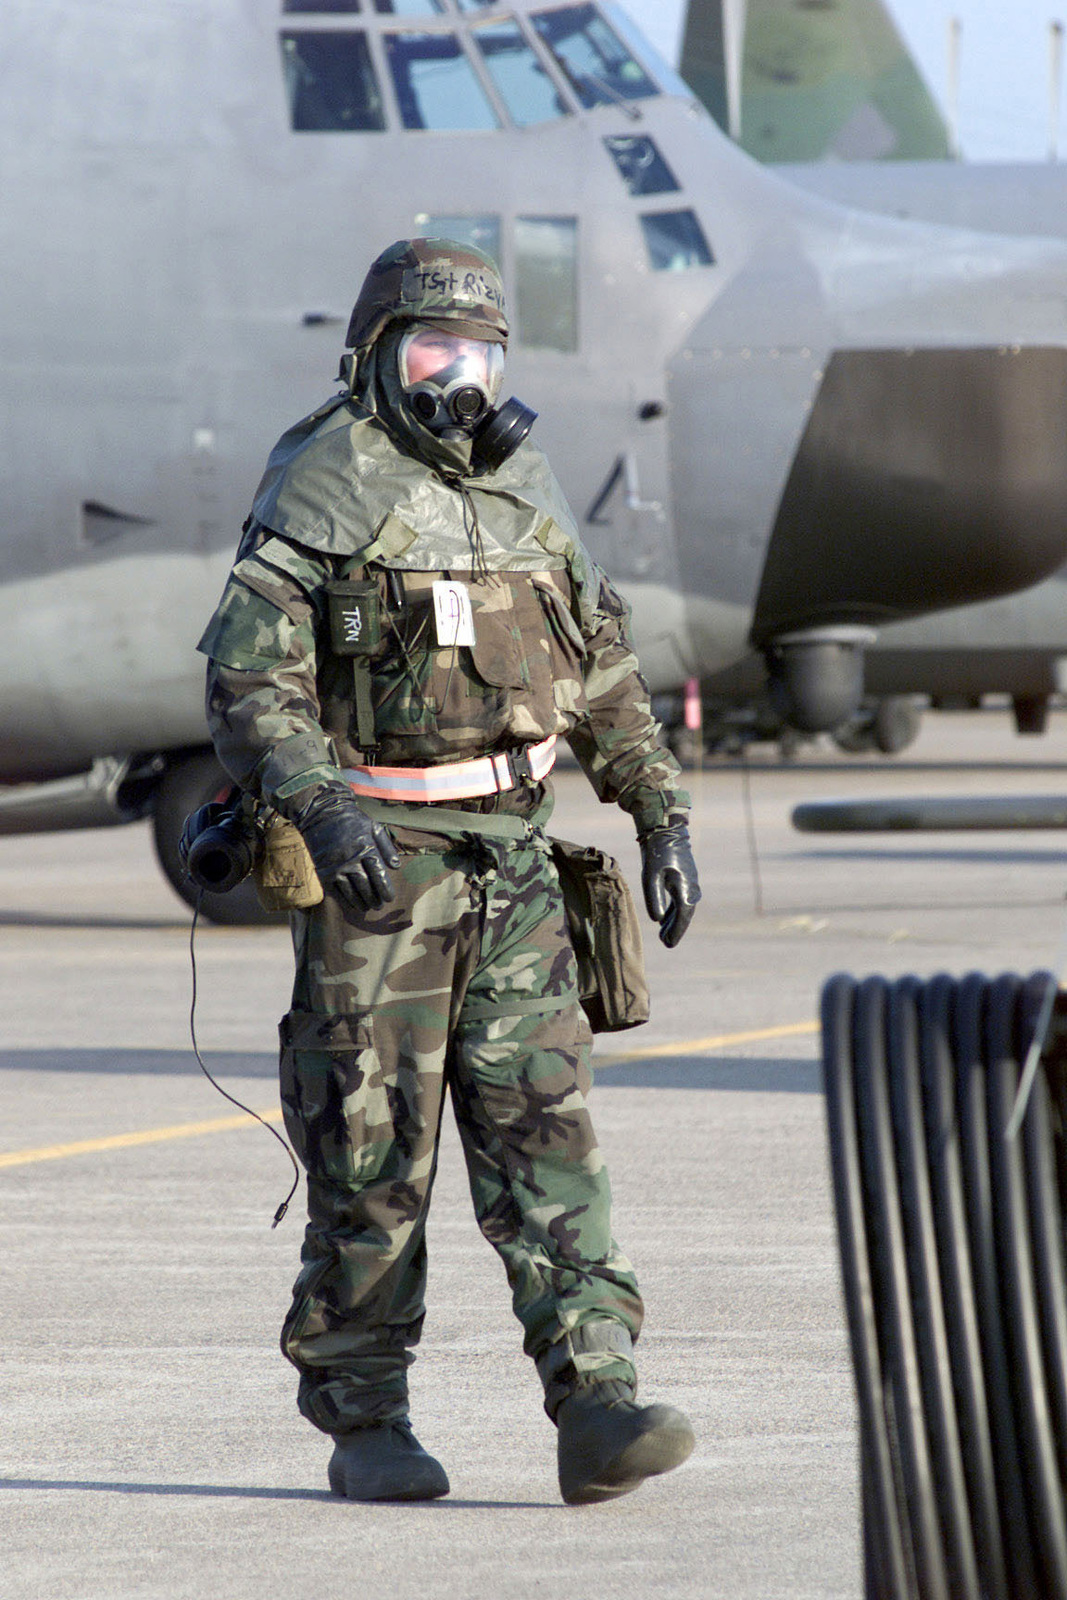 US Air Force Technical Sergeant Rob Rizya works on the Taegu Air Base, Korea, flightline while wearing Mission-Oriented Protective Posture response level 4 (MOPP-4) gear, following a simulated chemical attack during exercise FOAL EAGLE 2000. TSGT Rizya is assigned to the 353rd Special Operations Group and is deployed to Taegu from Kadena Air Base, Okinawa. FOAL EAGLE is held annually in South Korea to demonstrate U.S. and South Korean military cooperation and is the U.S. Militarys largest Joint-Service, Multi-National field training drill. This year's drill involves about 25,000 active duty, Reserve, and National Guard troops from the United States and bases throughout the Pacific Command...